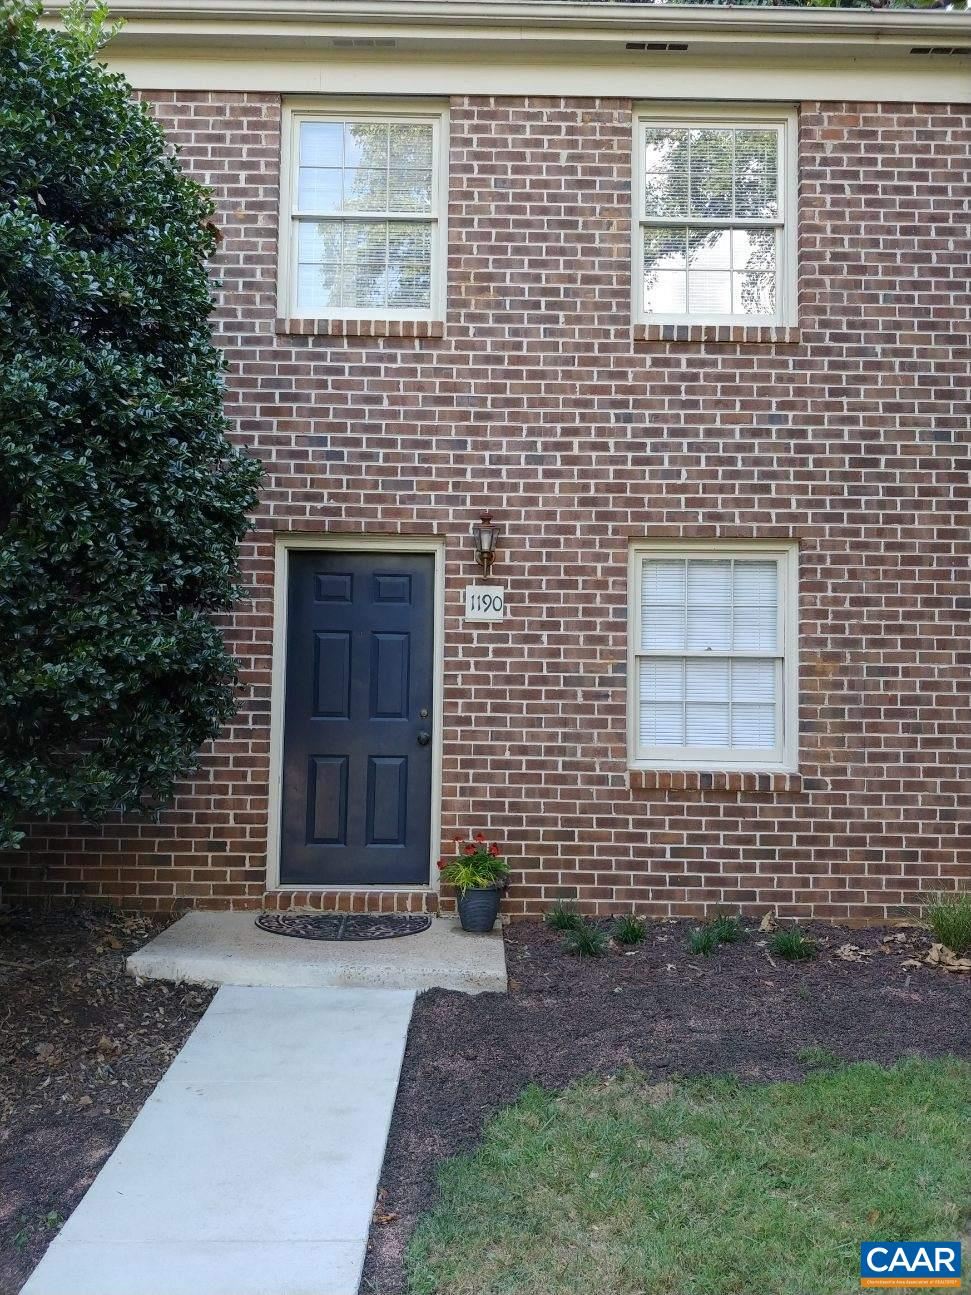 Why rent?  Own this 2 bedroom 1 1/2 bath condo w/ prime Albemarle County location minutes from C'ville downtown mall, UVA, shopping, Rivanna Station & more.   Appliances included! The home was renovated 18+/- months ago w/ new carpet & vinyl flooring, kitchen cabinets, paint, etc. Great back yard w/ wooded area behind the home. Come see the value & prime location for yourself.  Low monthly payments less than rent!